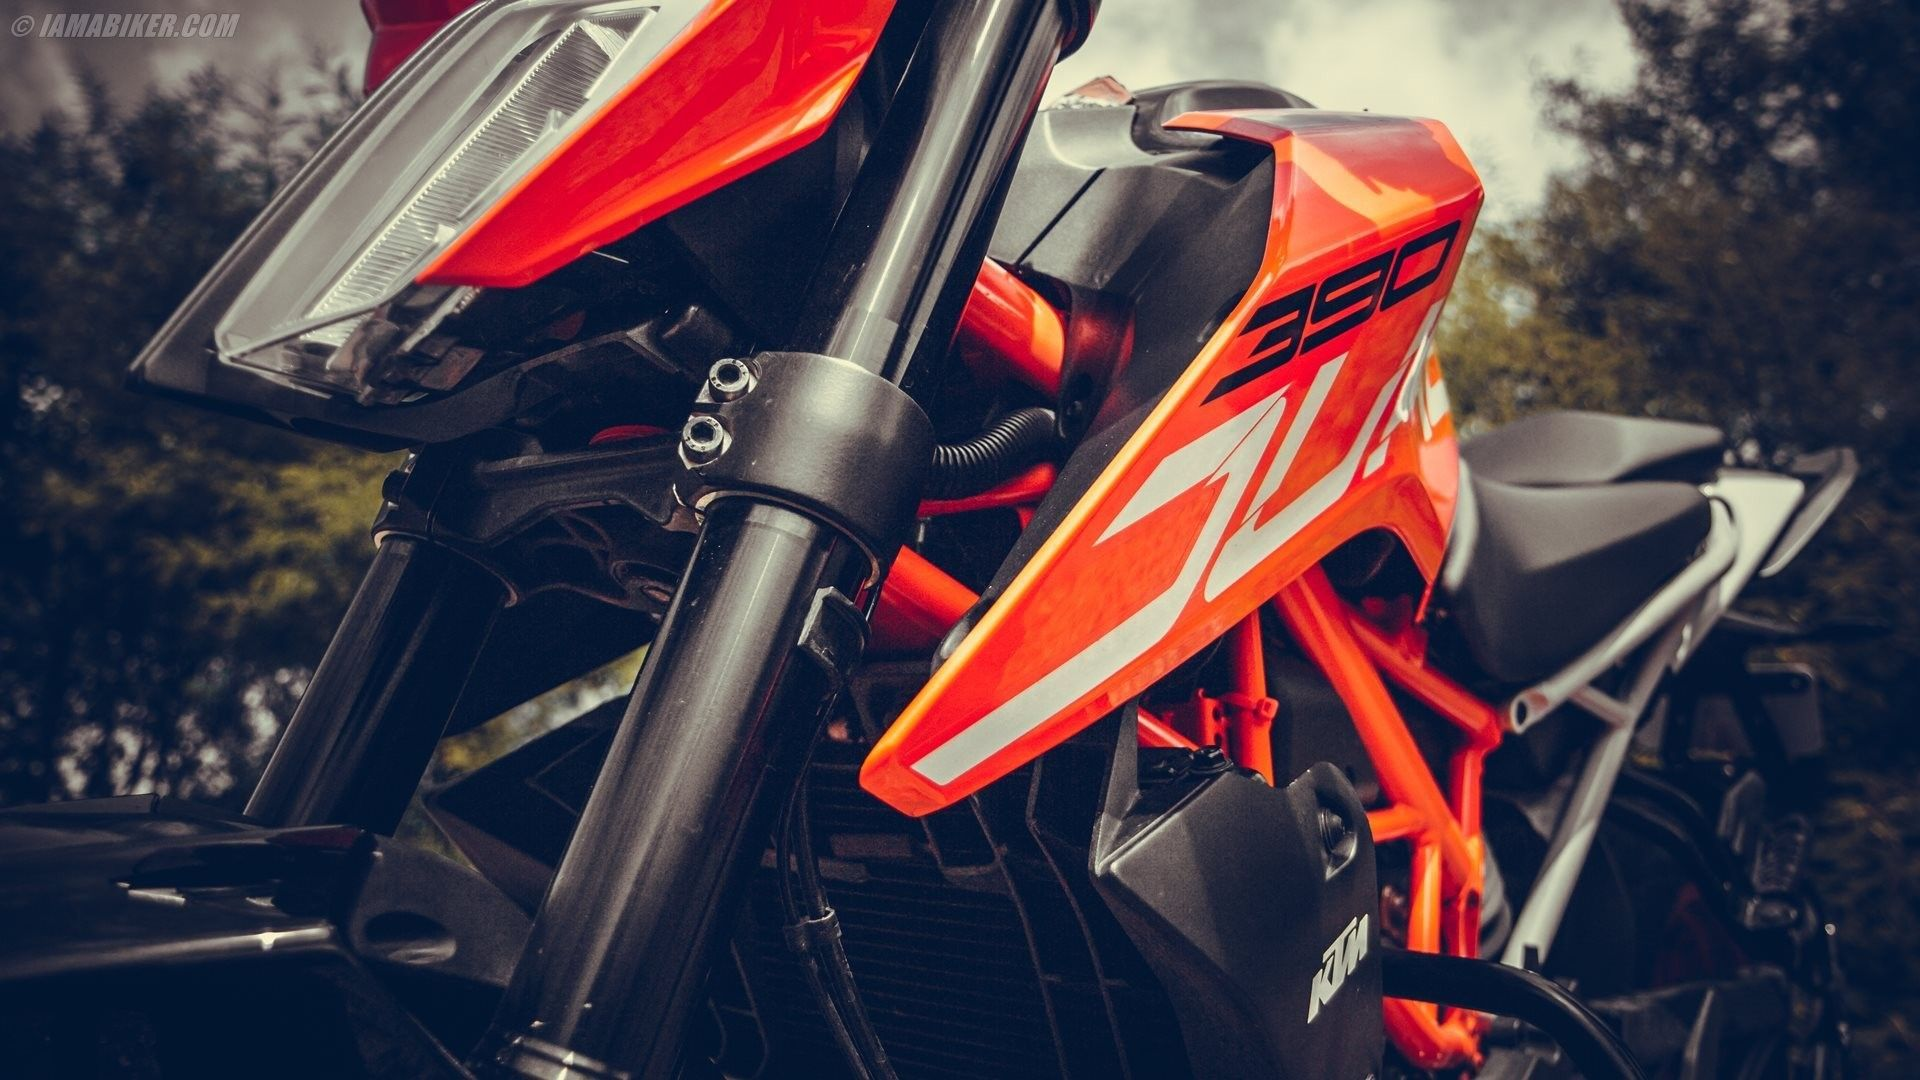 Ktm 390 Wallpapers Top Free Ktm 390 Backgrounds Wallpaperaccess